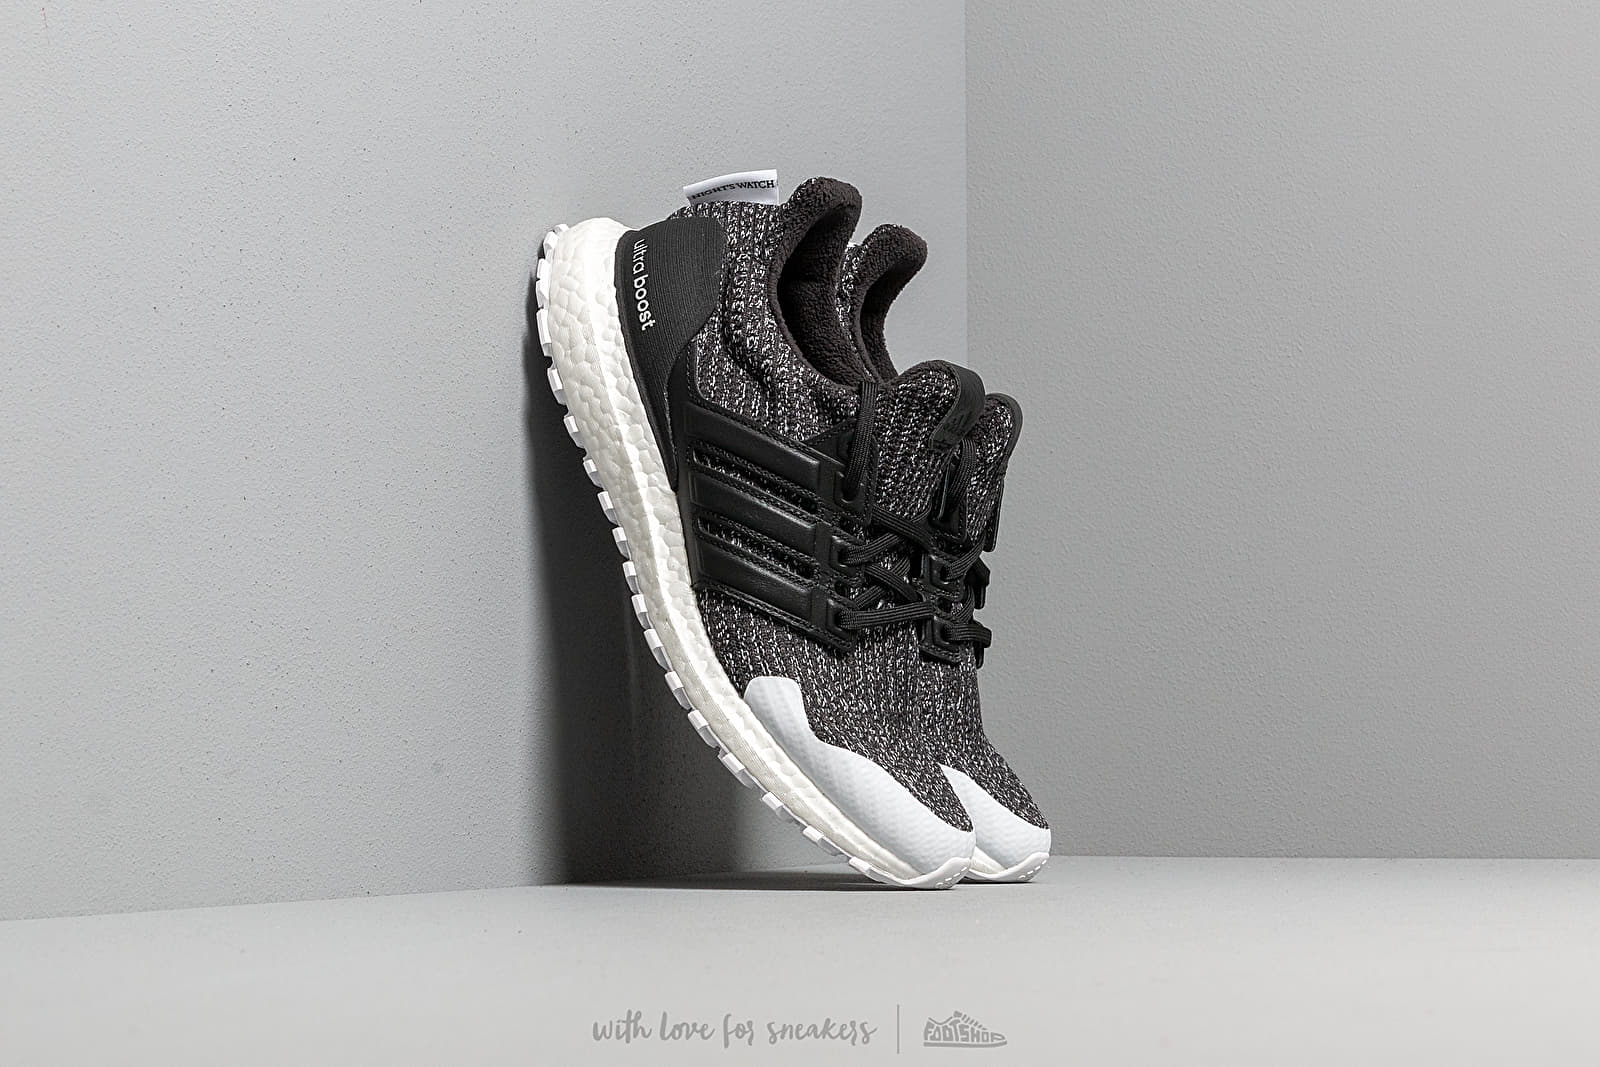 Men's shoes adidas x Game of Thrones UltraBOOST Core Black/ Core Black/ Ftw White